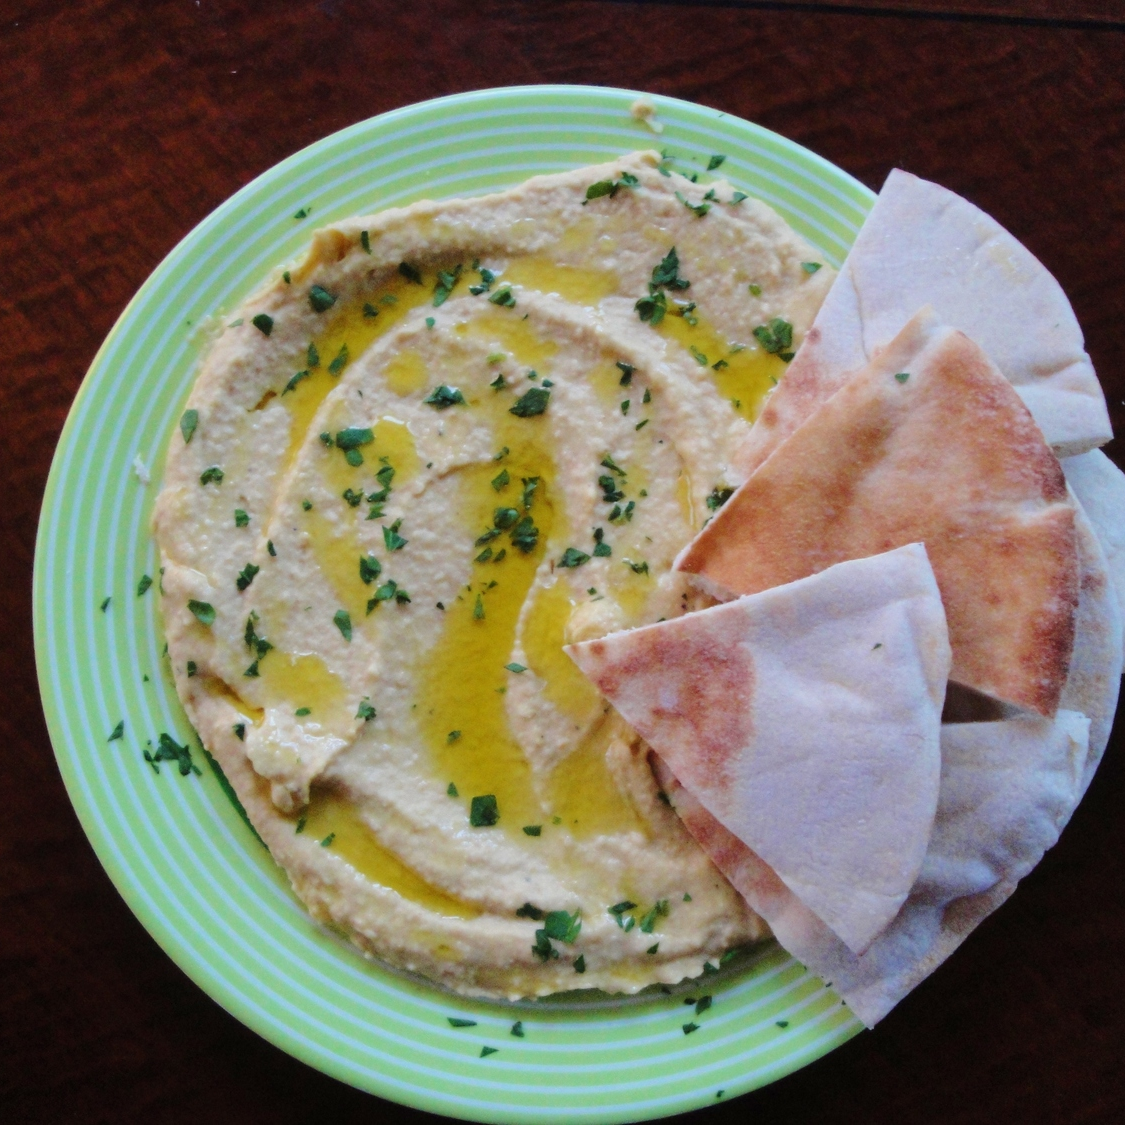 Classic Hummus in the Adventure Kitchen, with pita and a sprinkle of parsley